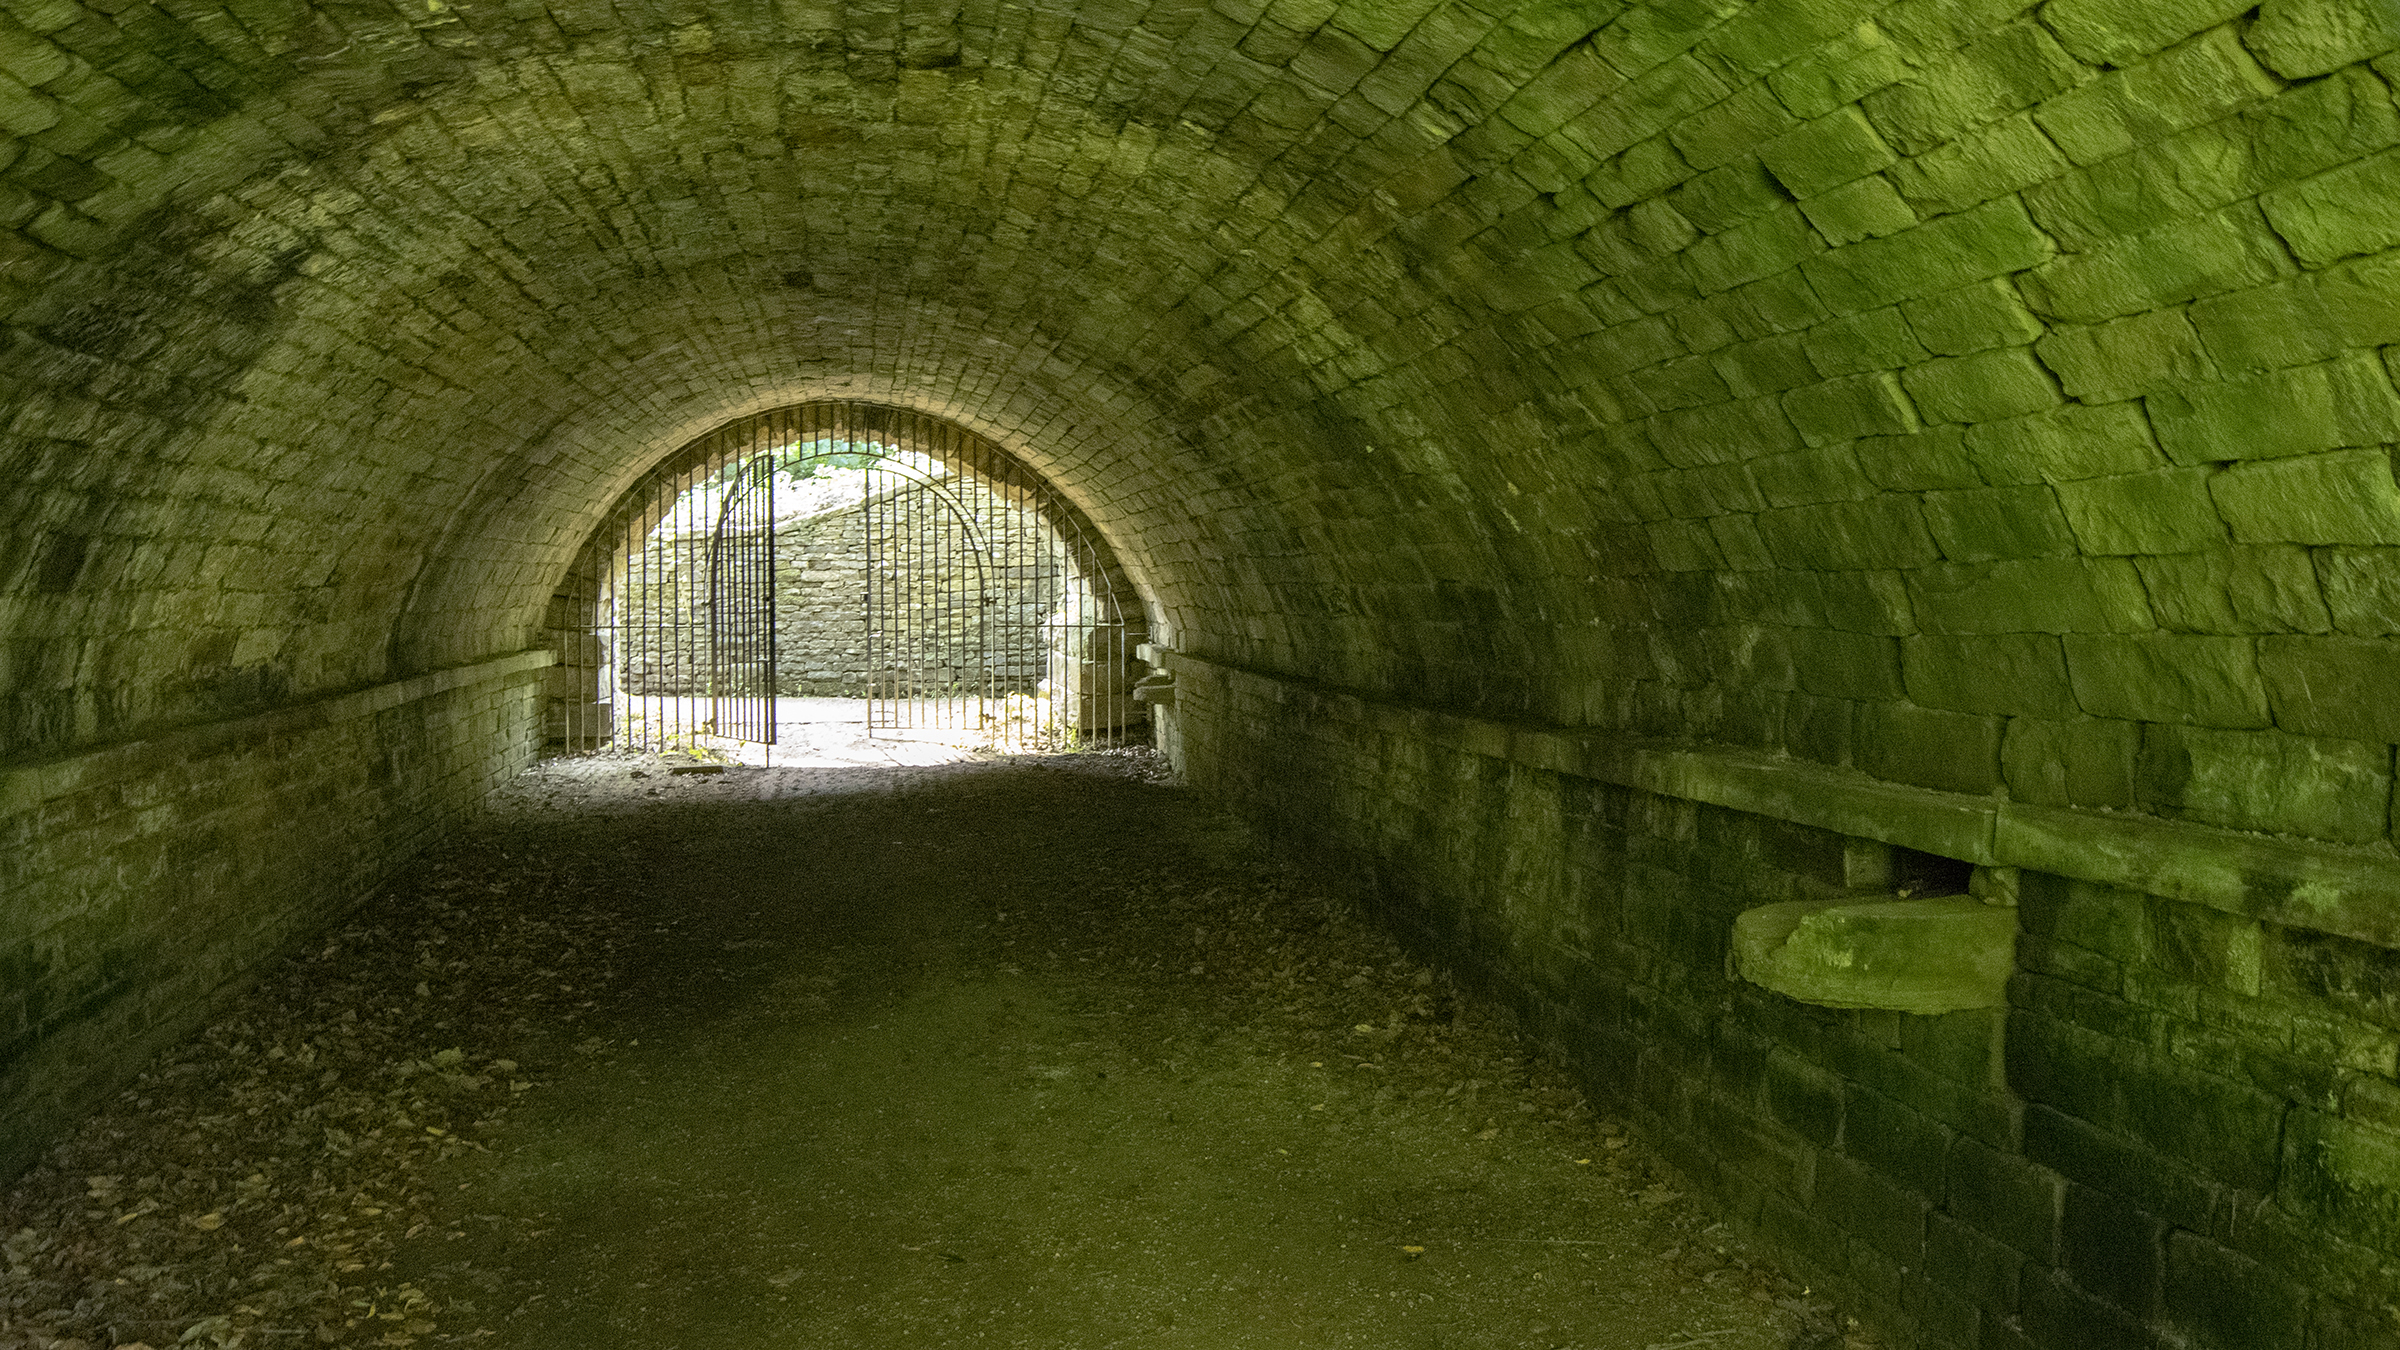 Tunnel at Shibden Hall